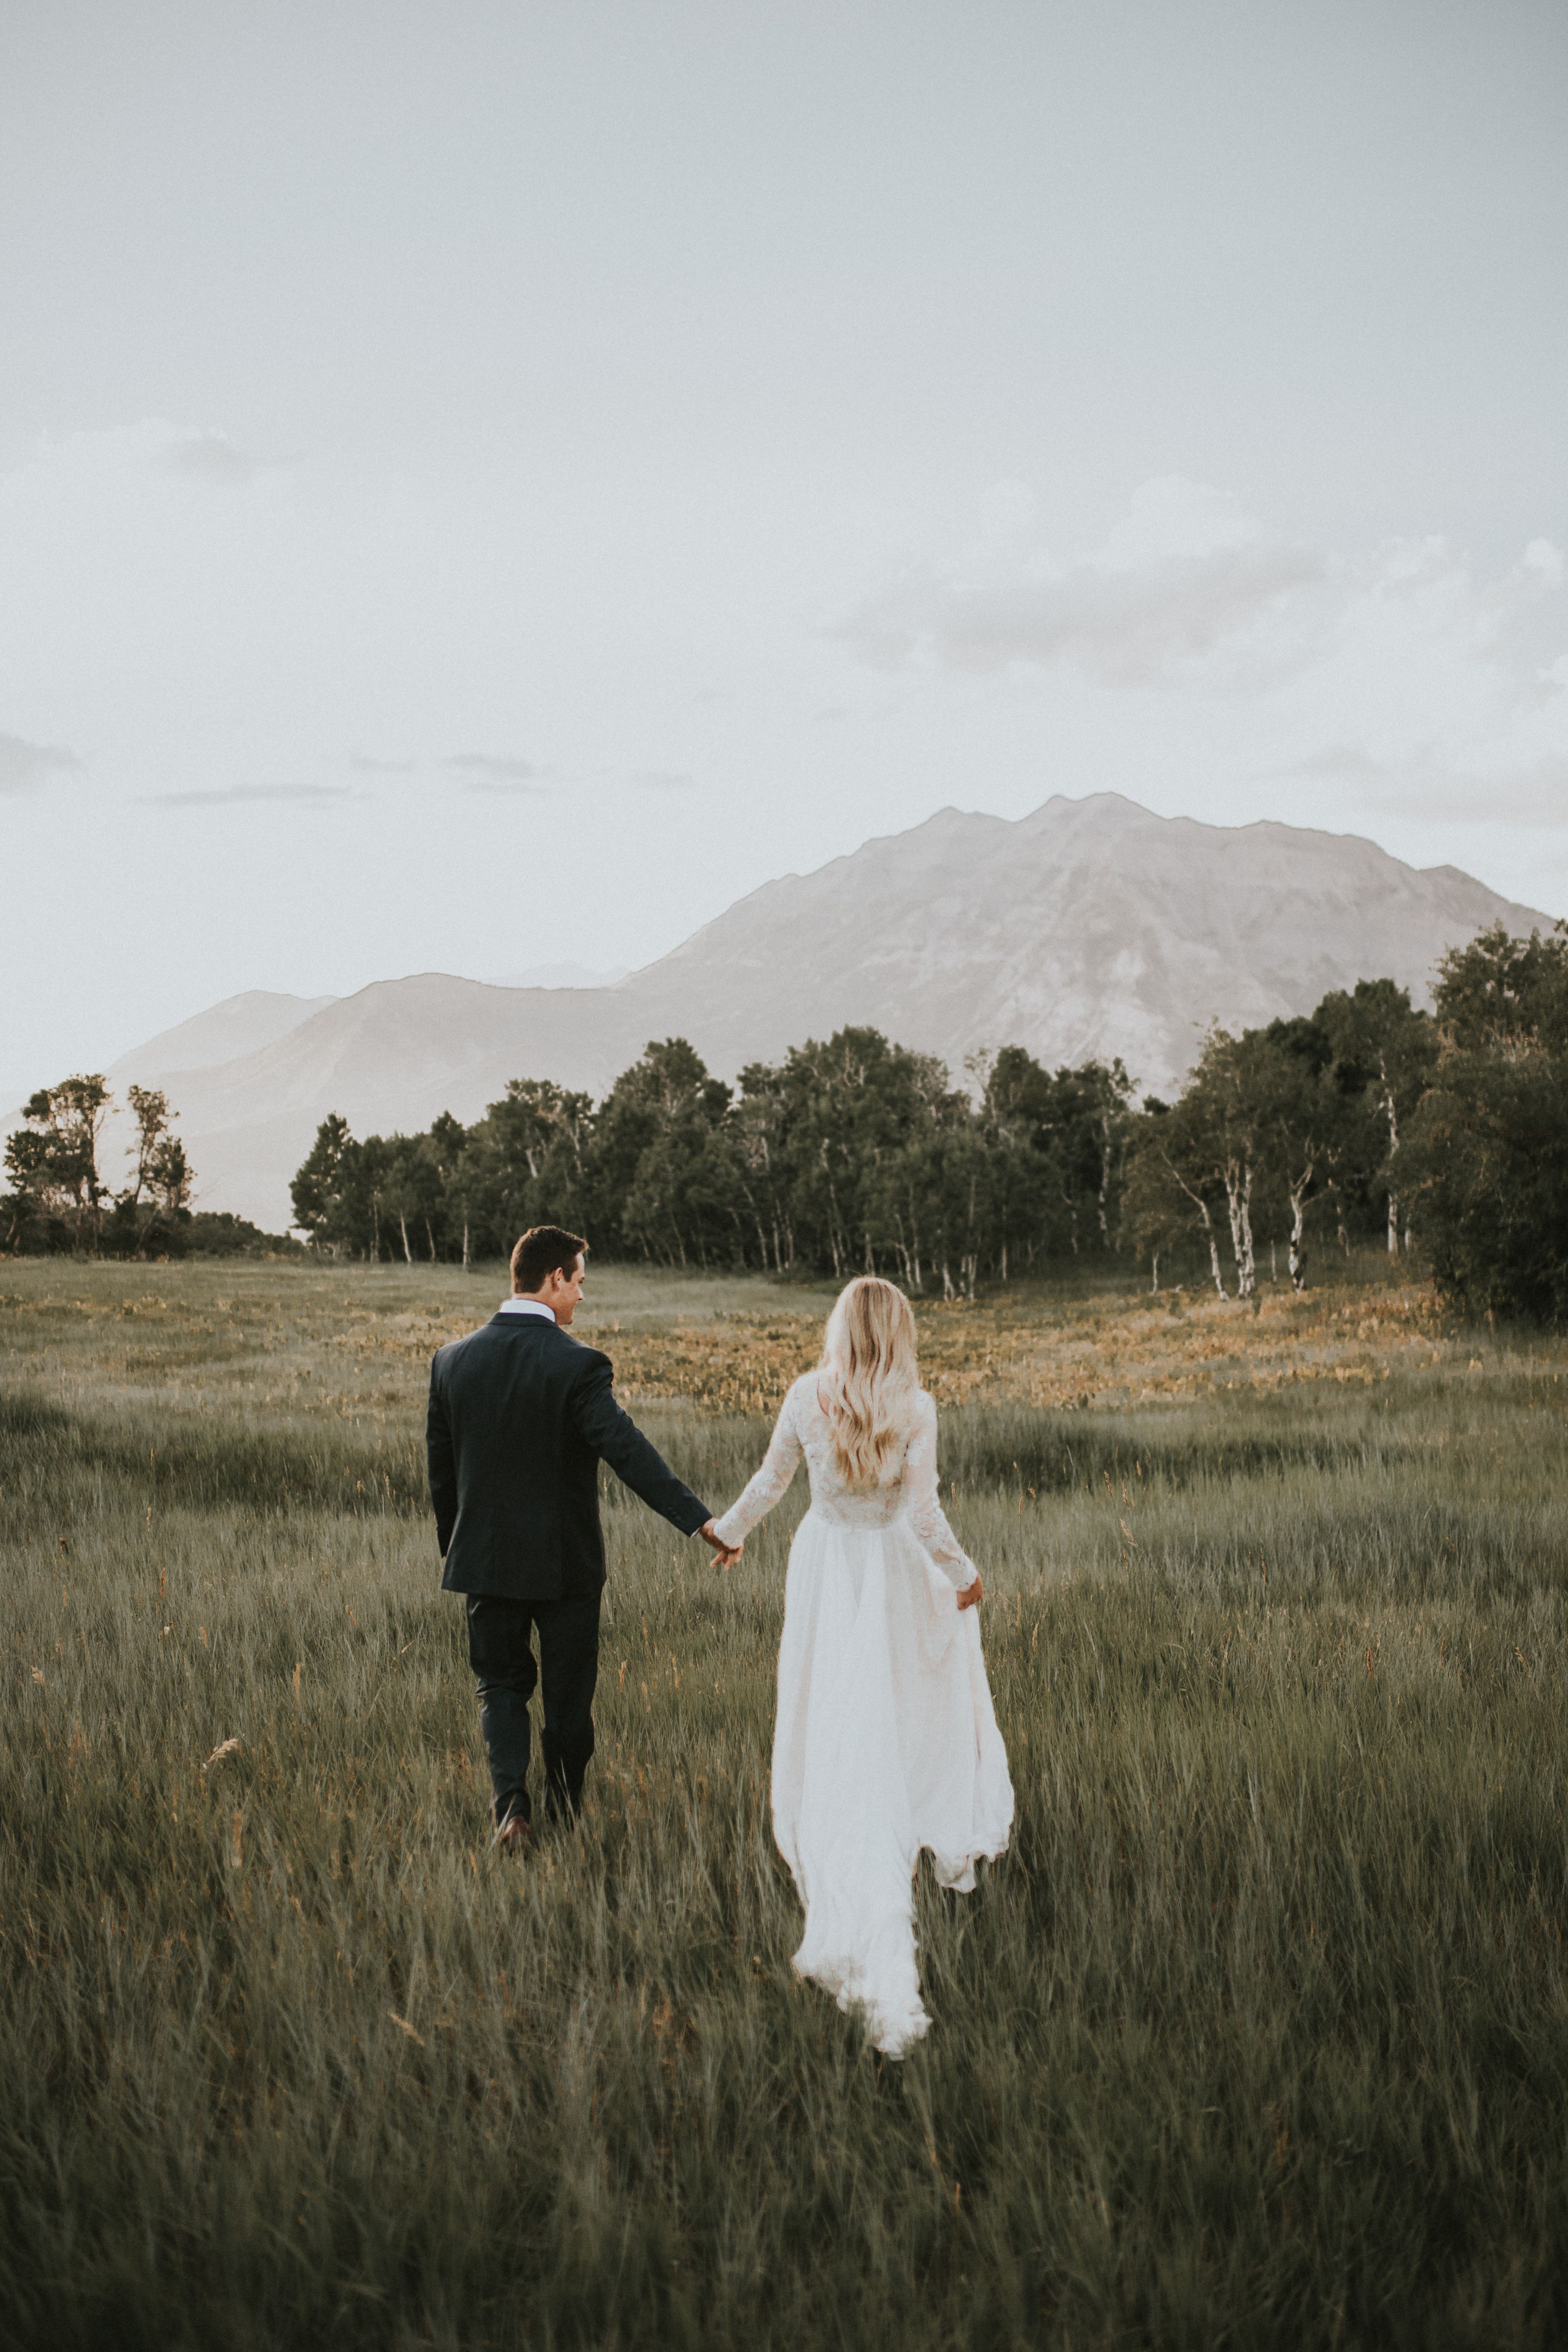 Wedding photography, you have to consider the following